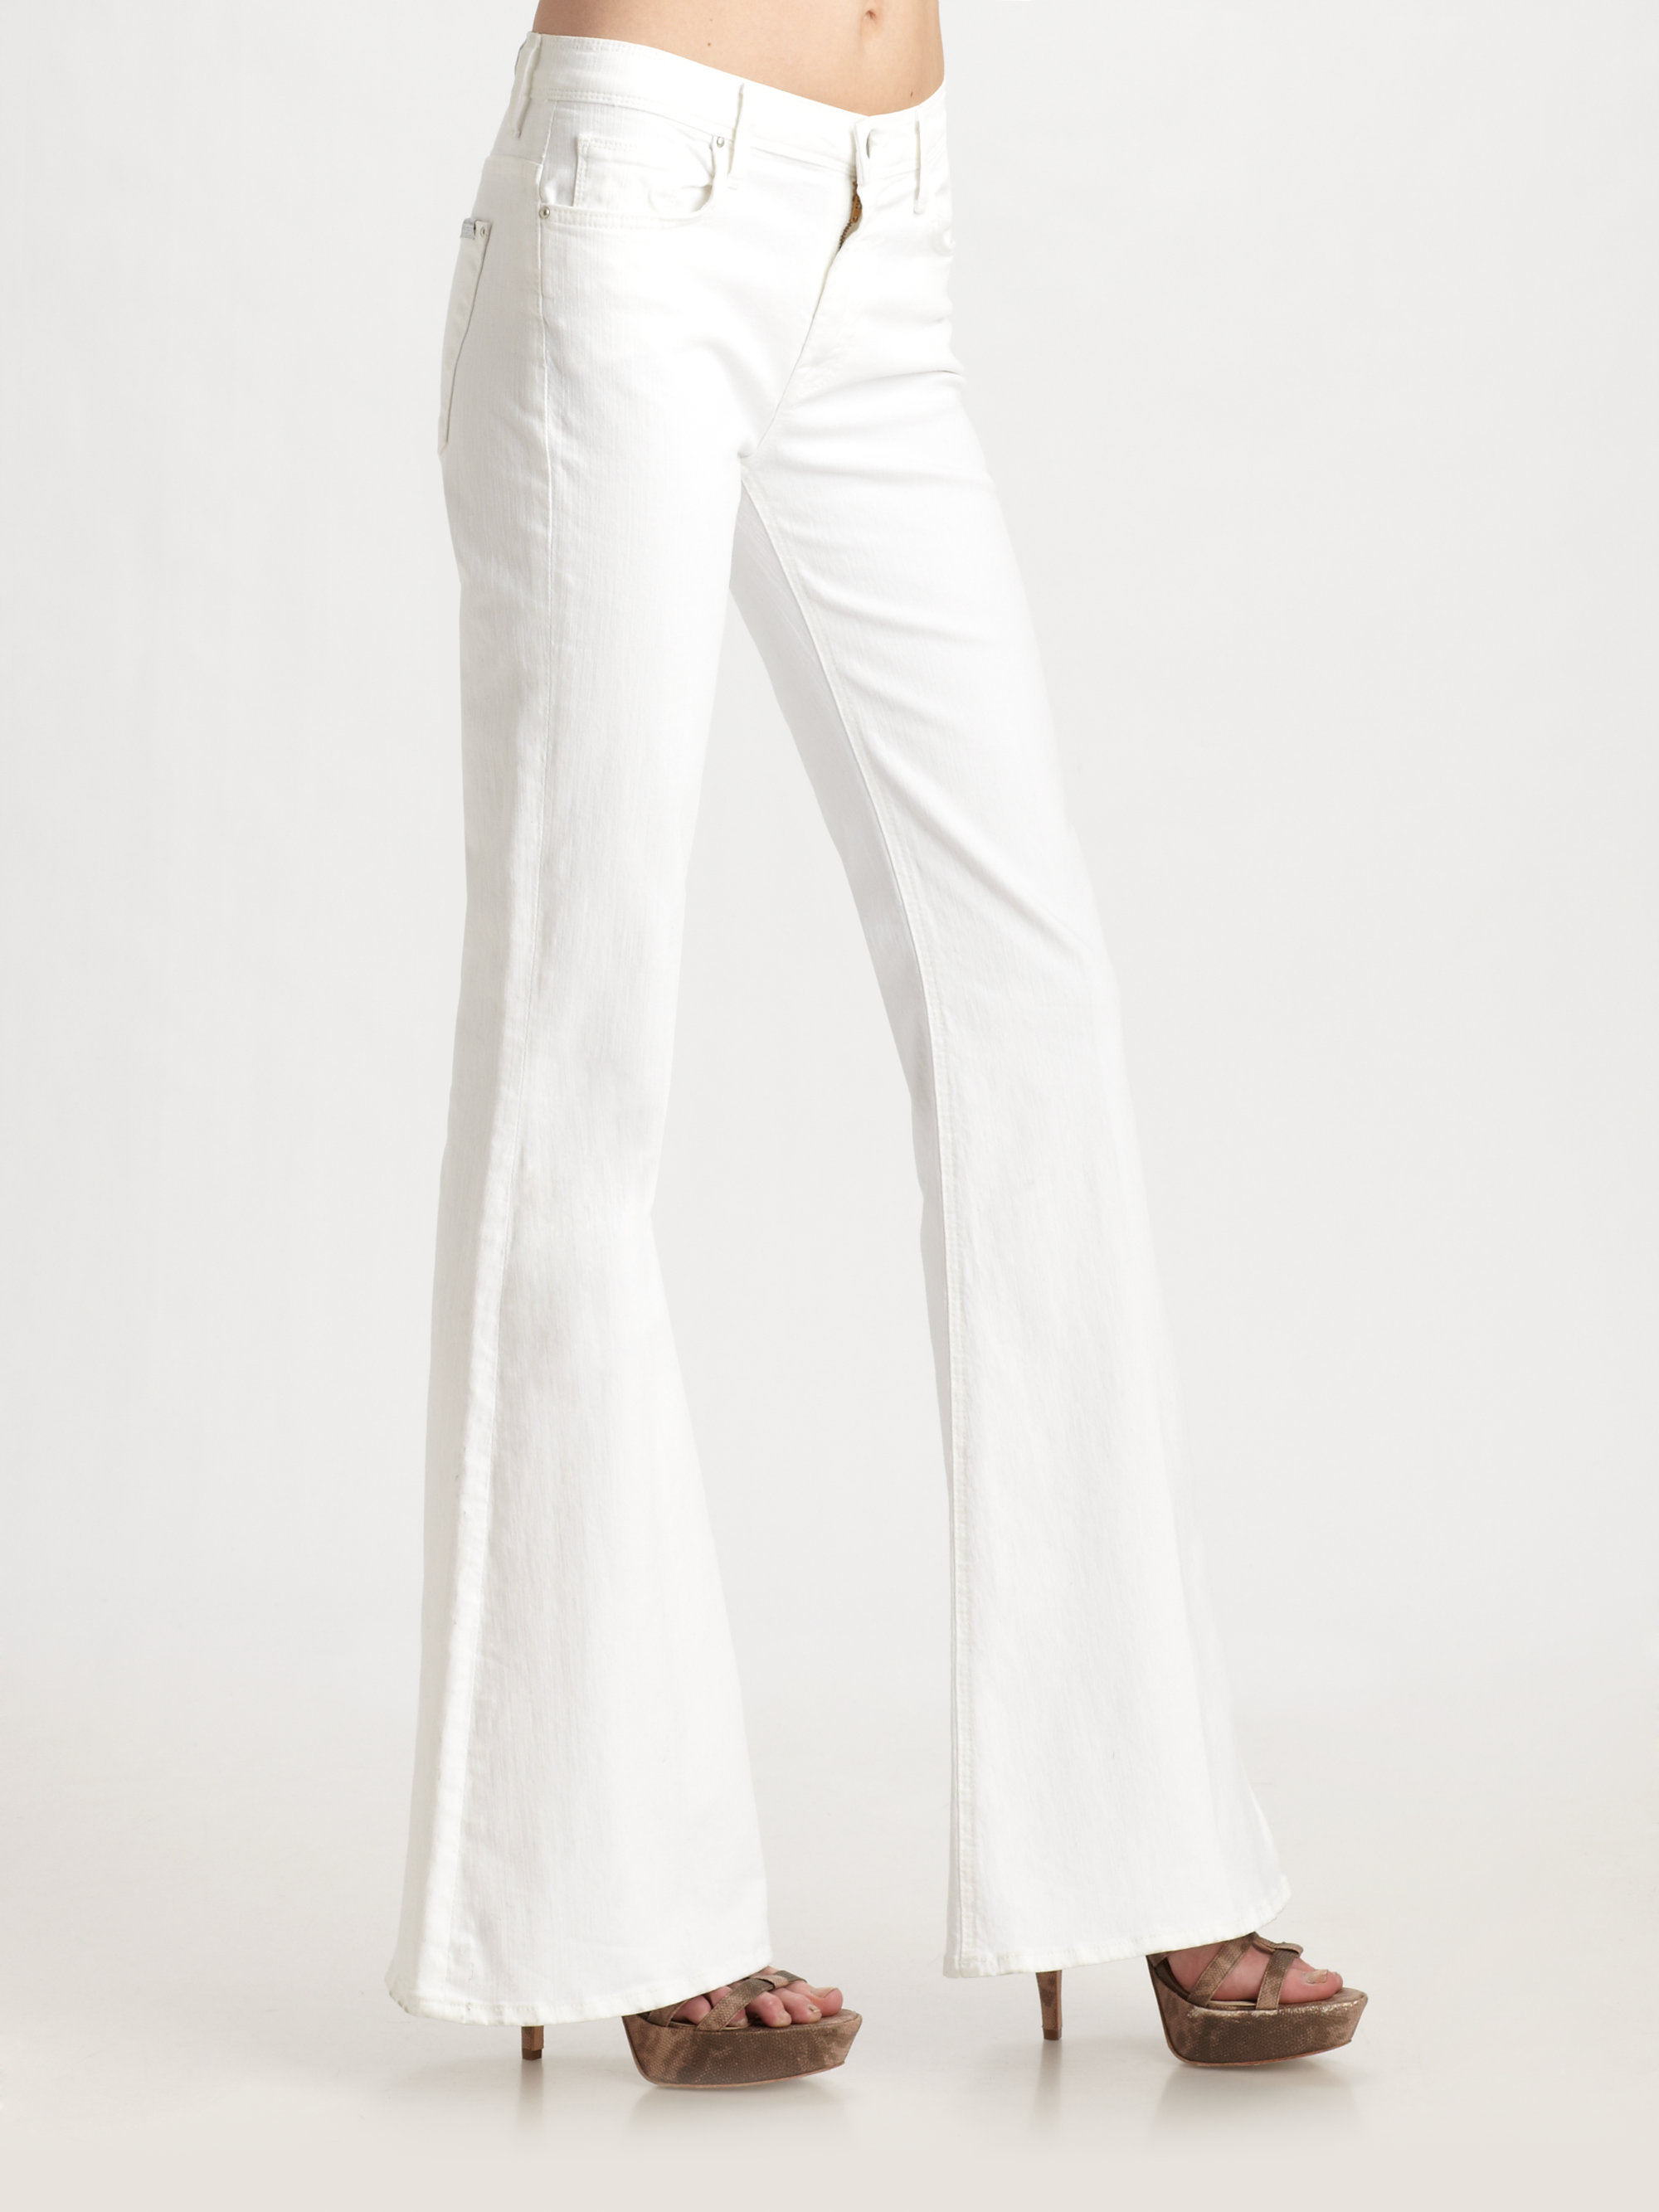 Five Star App >> Lyst - 7 For All Mankind Bell Bottom Jeans in White